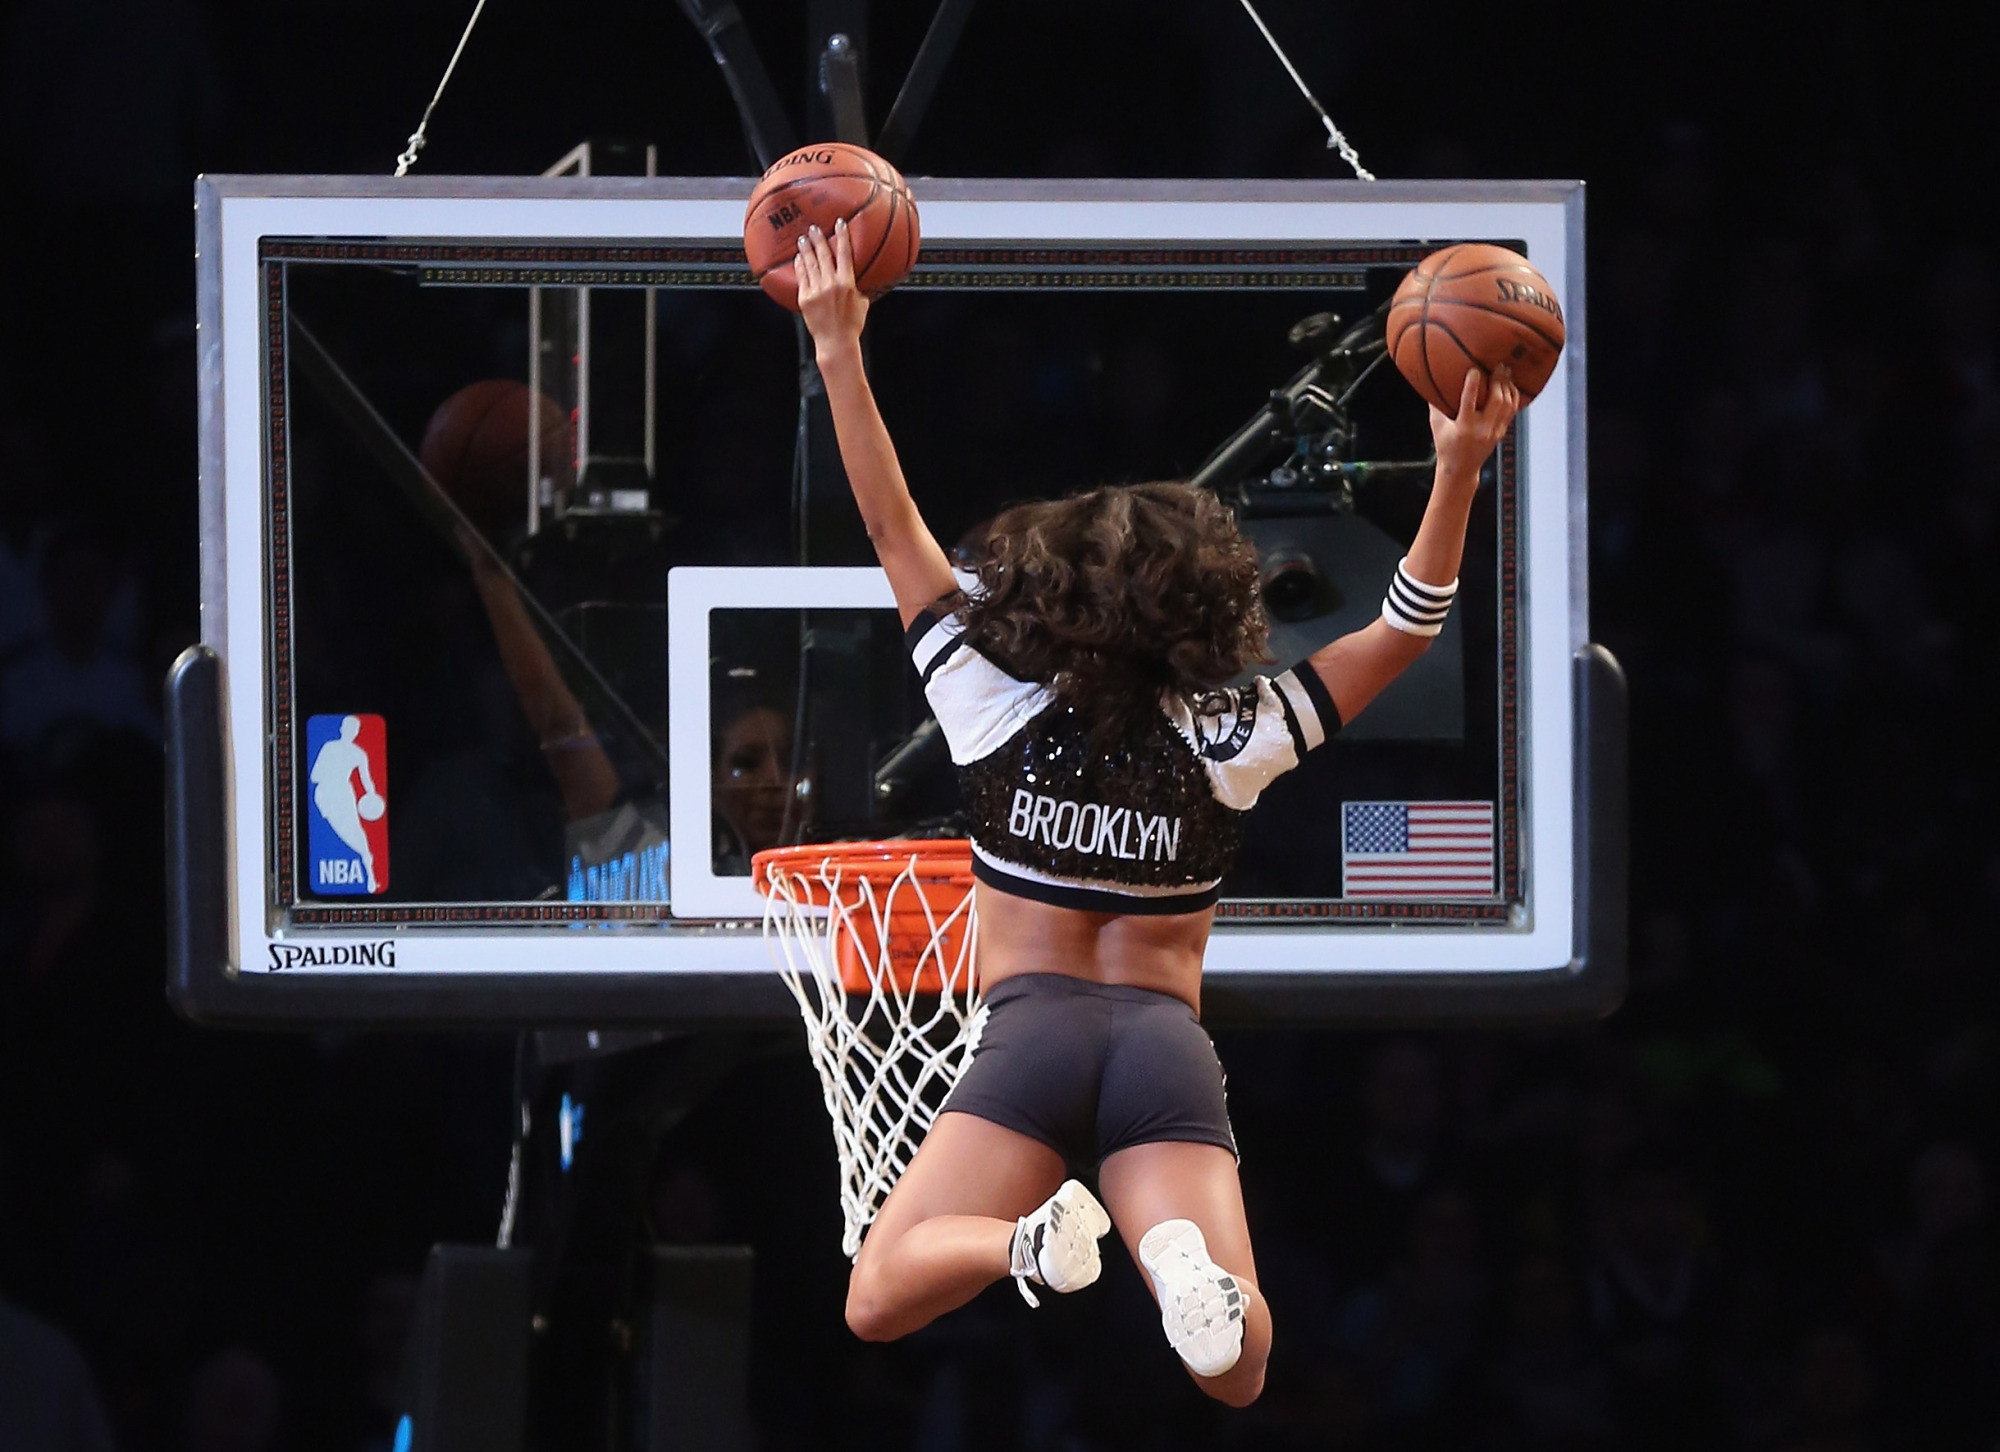 2000x1452 A Brooklynette cheerleader flies in to score two during a break in the game  between the Brooklyn Nets and the Los Angeles Clippers at the Barclays  Center on ...